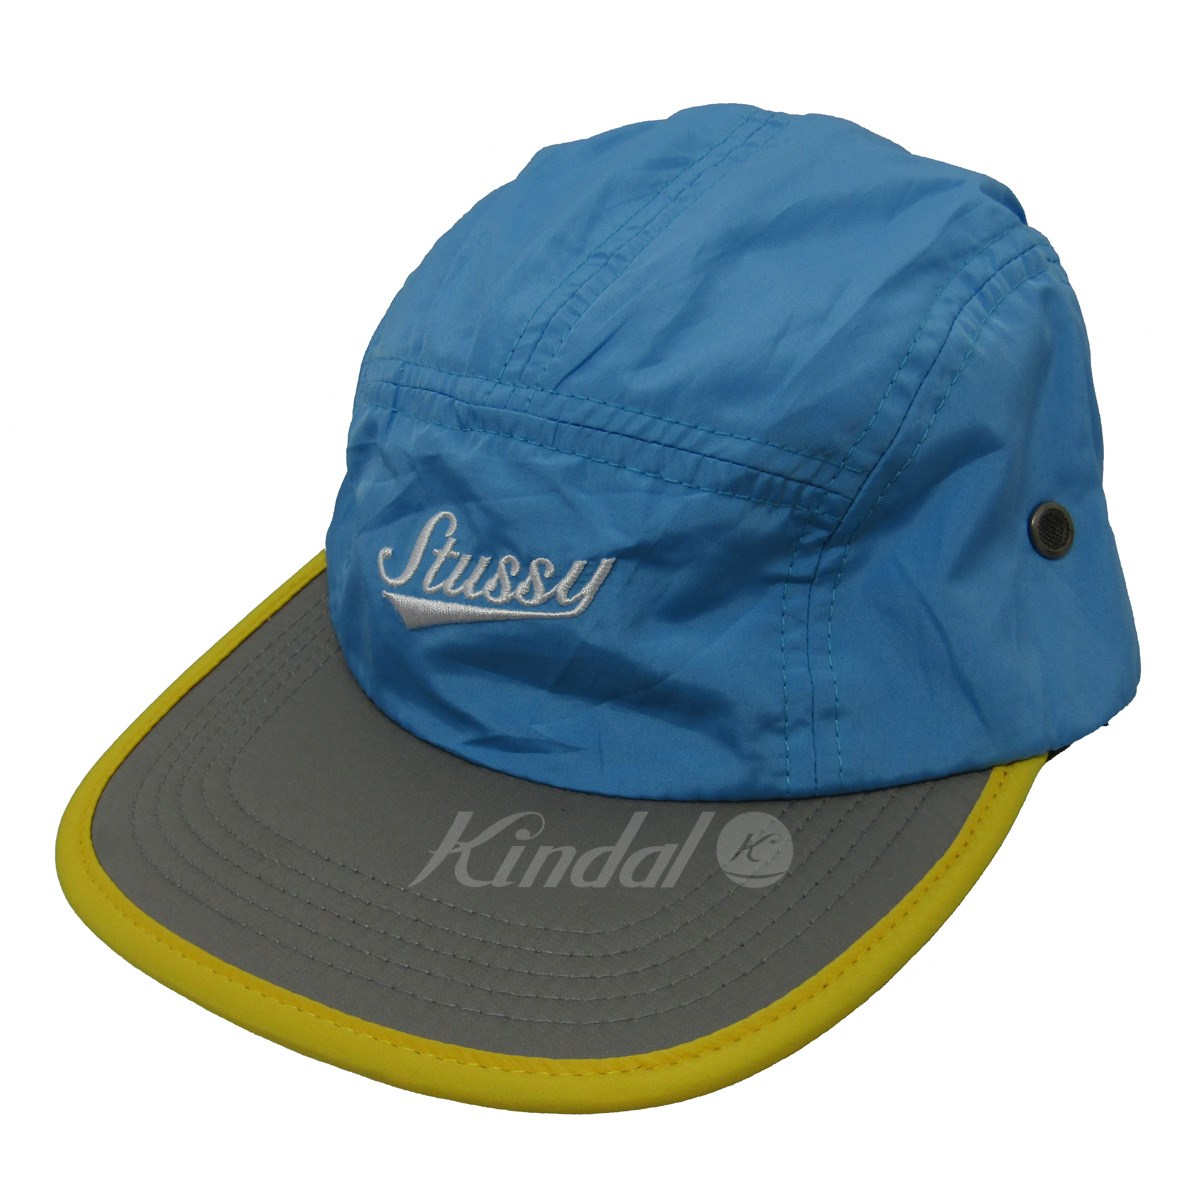 kindal  Stussy logo embroidery camping cap blue size ... 8bcecbdce42